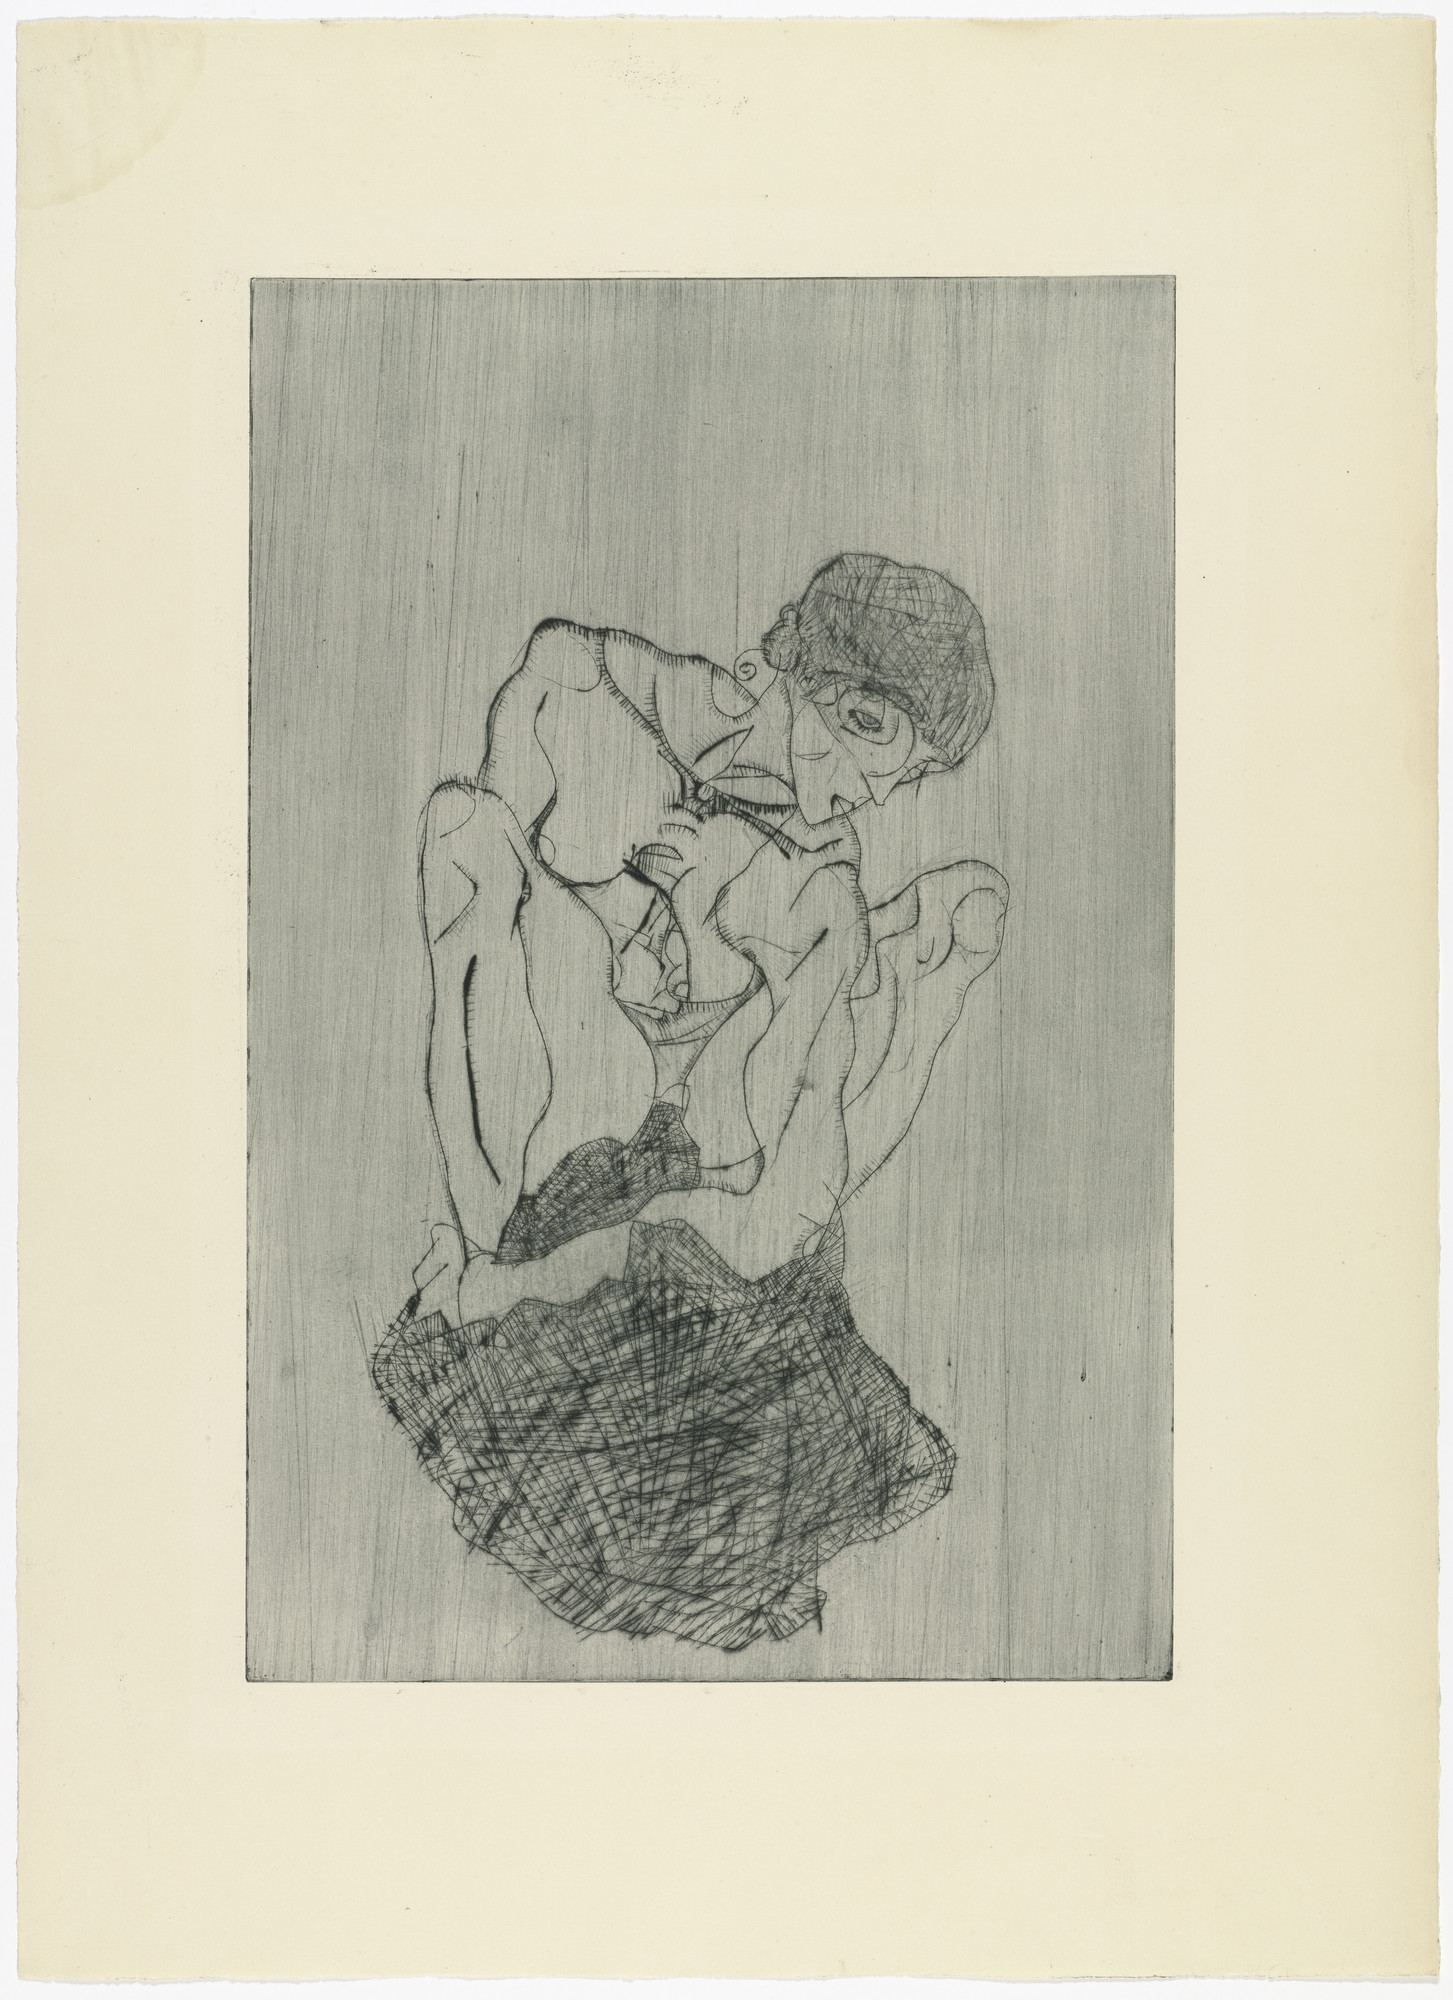 Egon Schiele. Sorrow (Kümmernis) from The Graphic Work of Egon Schiele (Das Graphische Werk von Egon Schiele). (1914, published 1922)